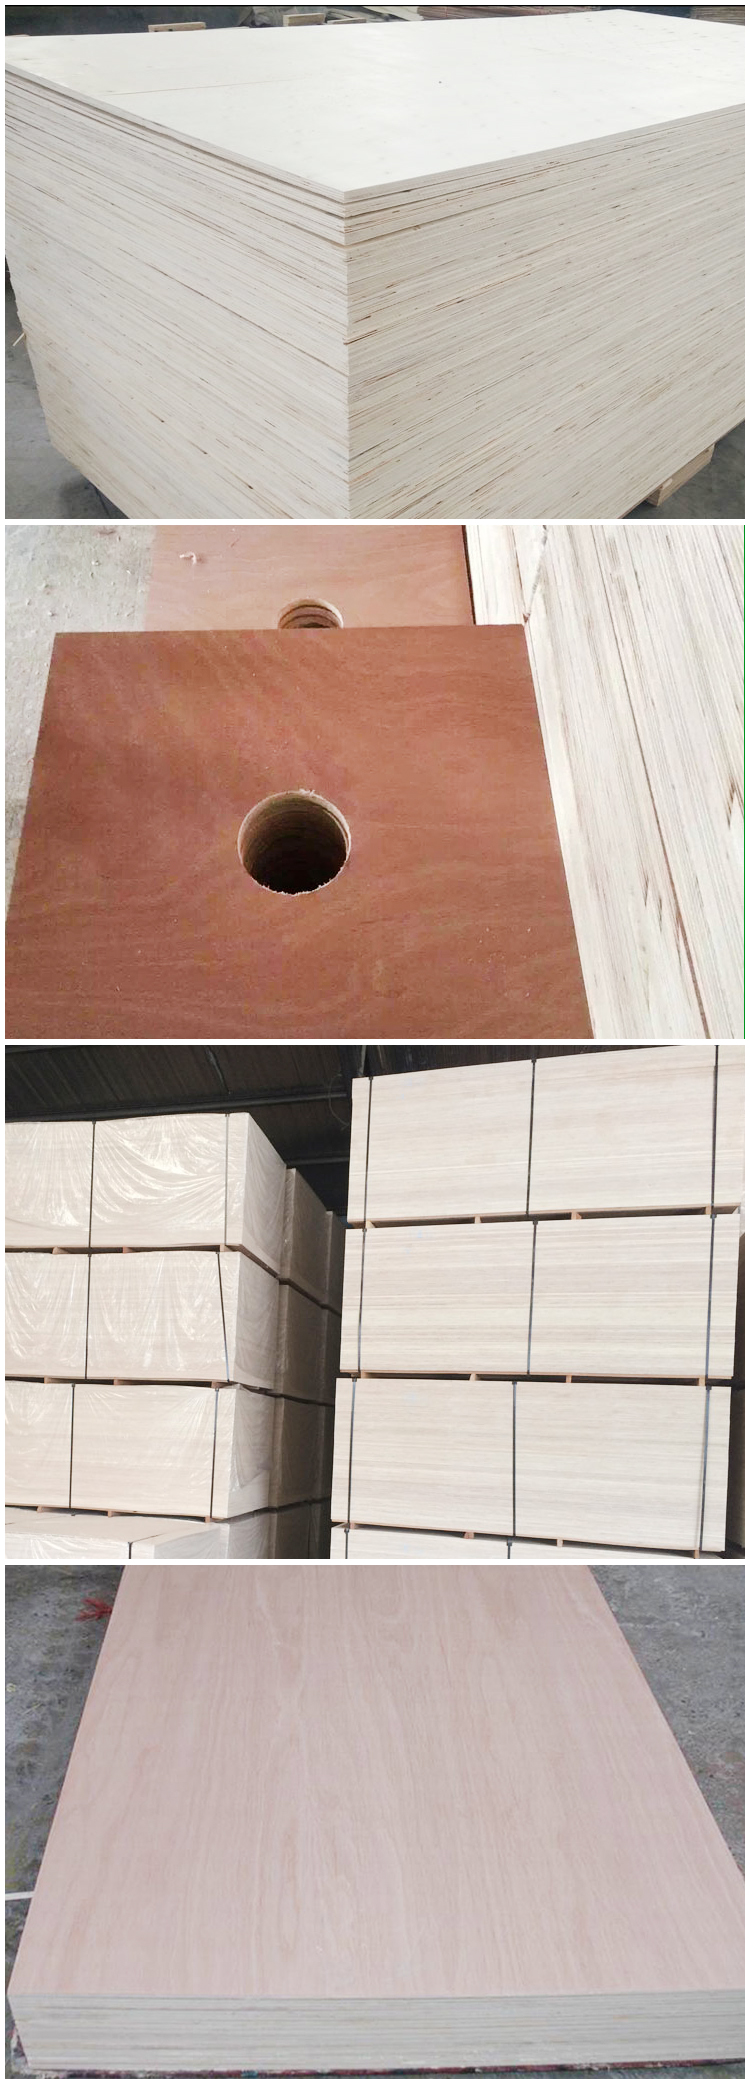 12mm poplar core plywood for packing(图2)